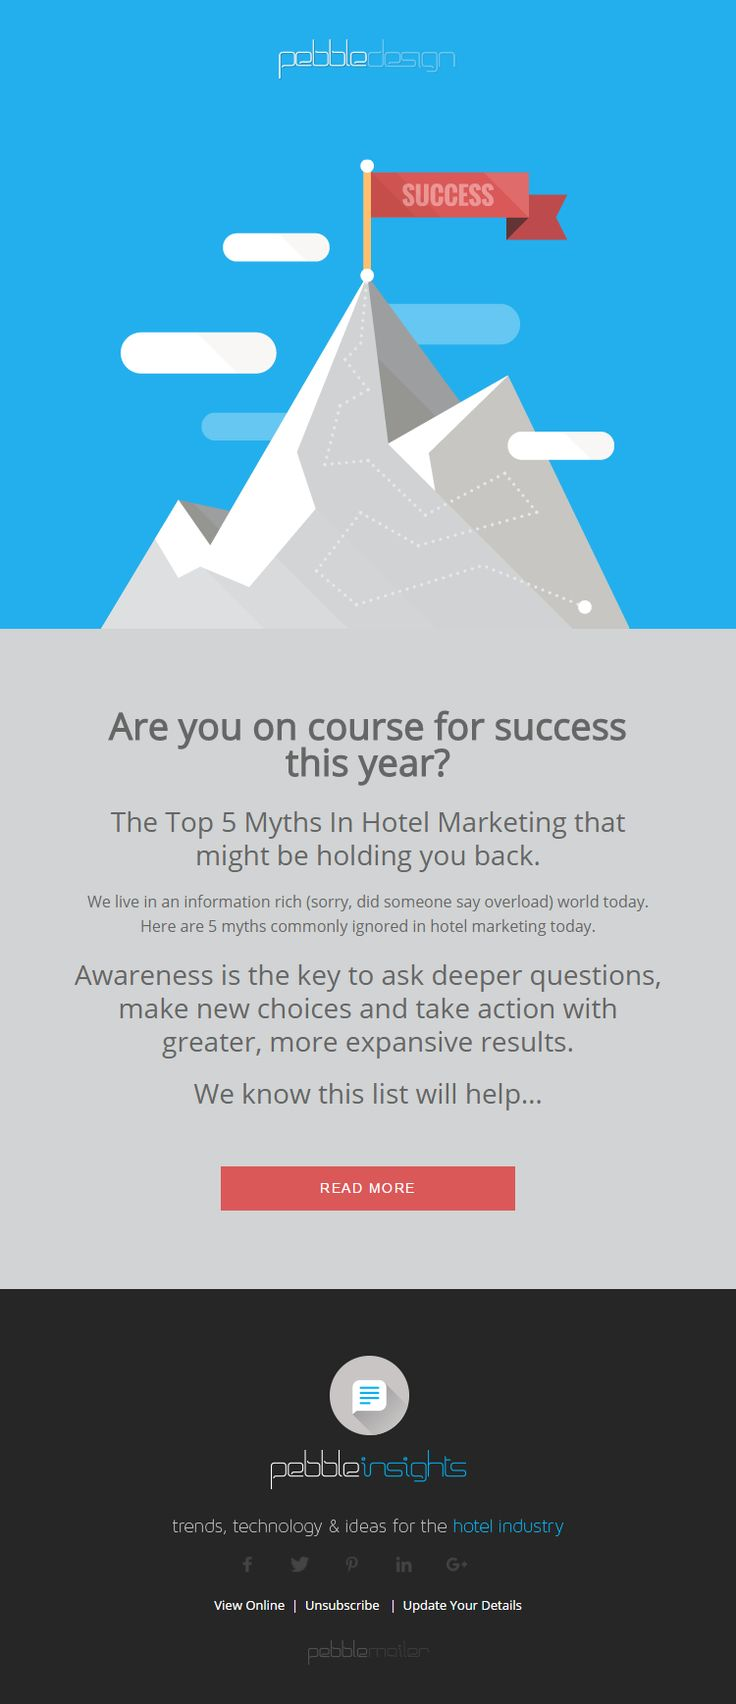 Are you on course for success this year? - Hospitality Insights #hospitalityinsights #hotelwebdesign #hotelwebsitedesign #pebbledesign #hotelwebsites